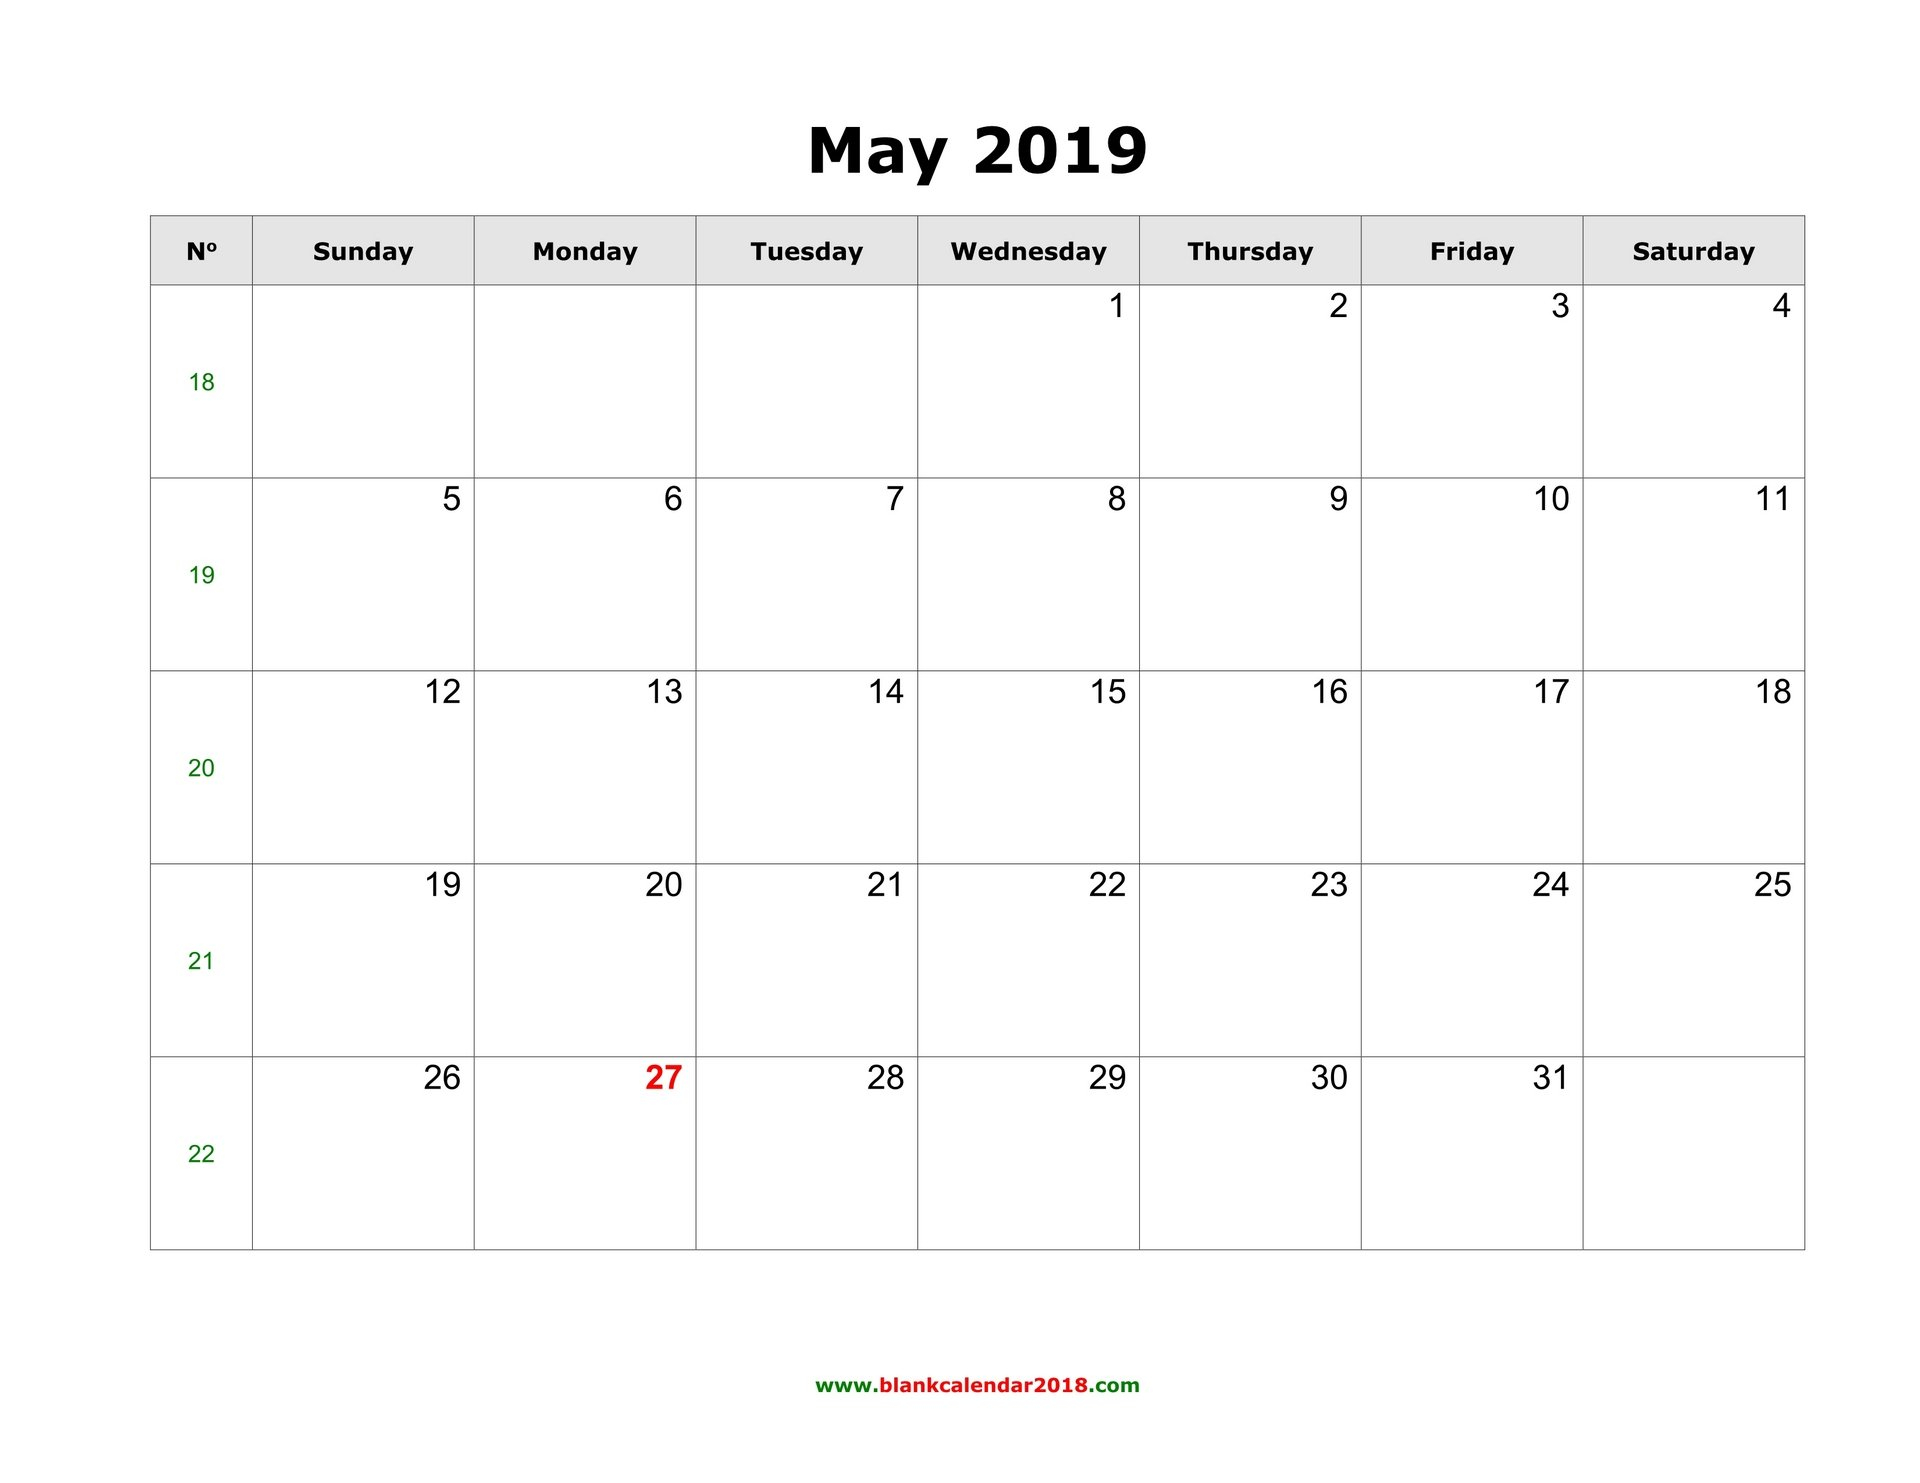 Blank Calendar For May 2019 Calendar 2019 Microsoft Word